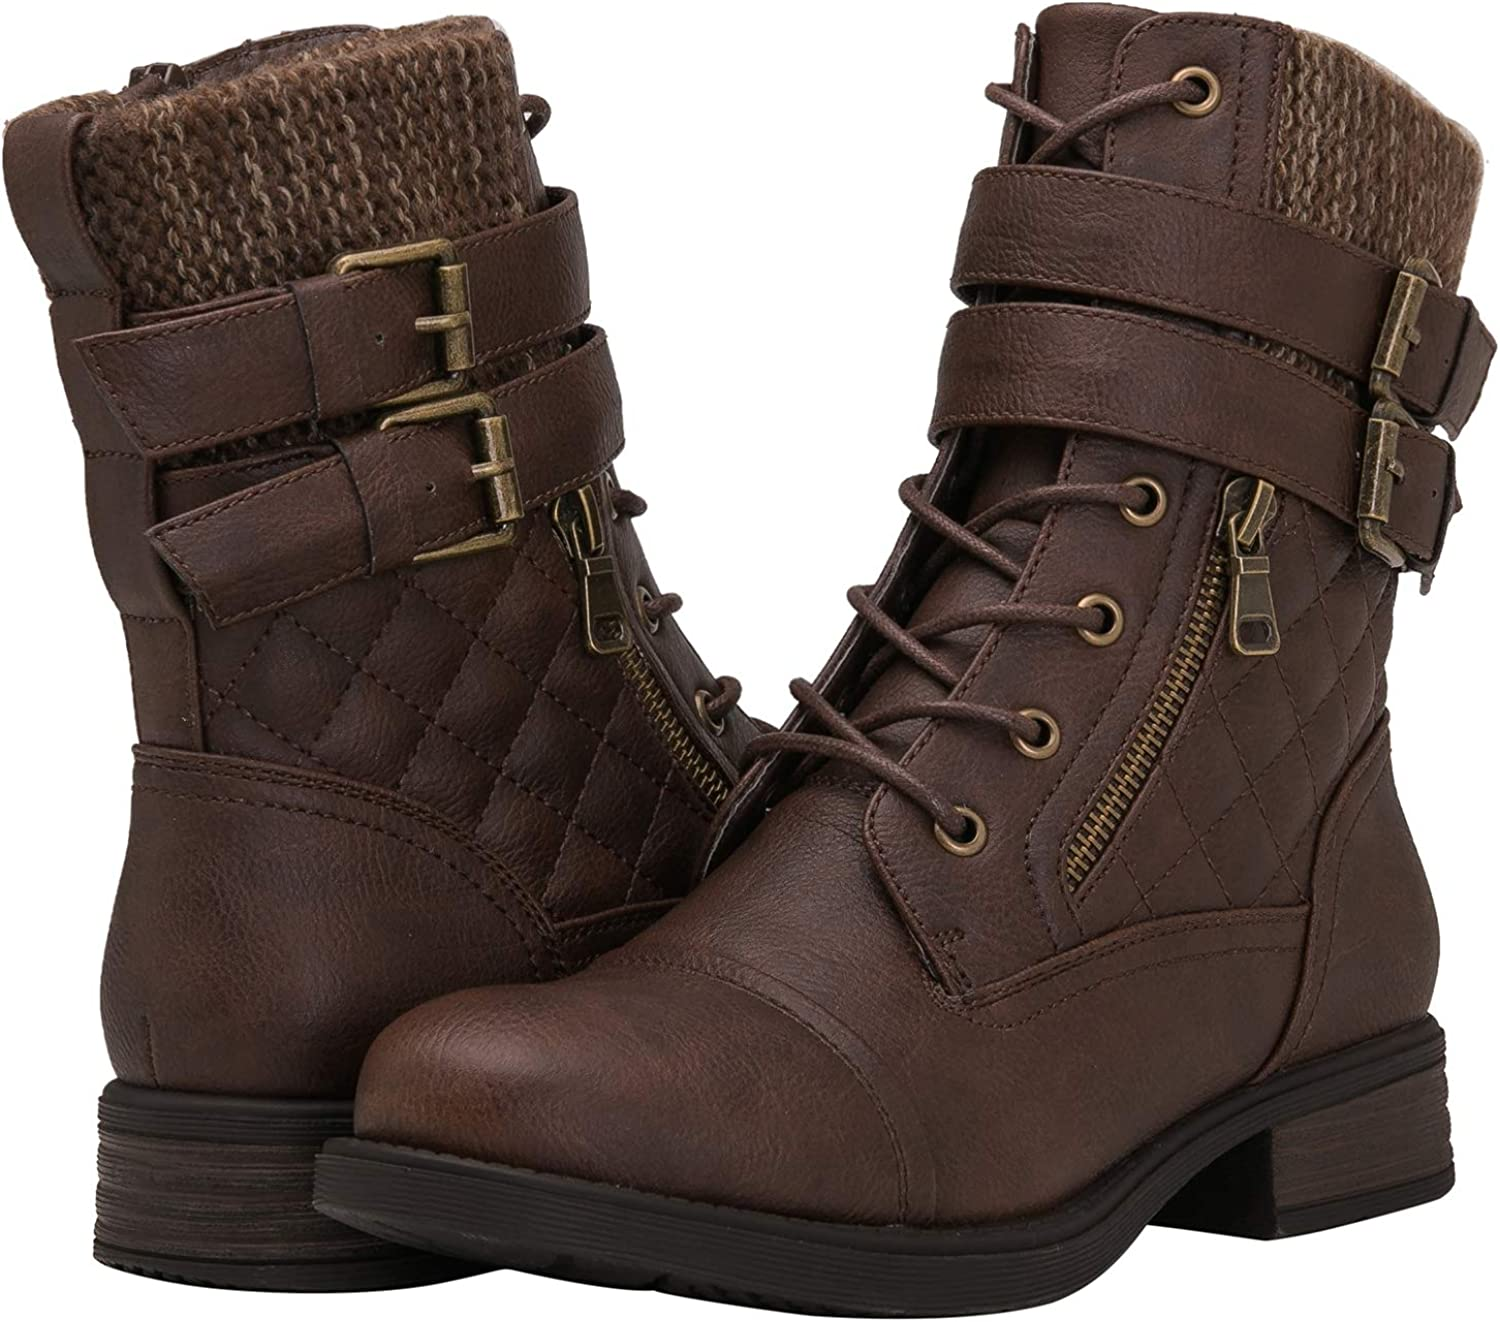 GLOBALWIN Women's Combat Boots Winter Lace Up Ankle Booties